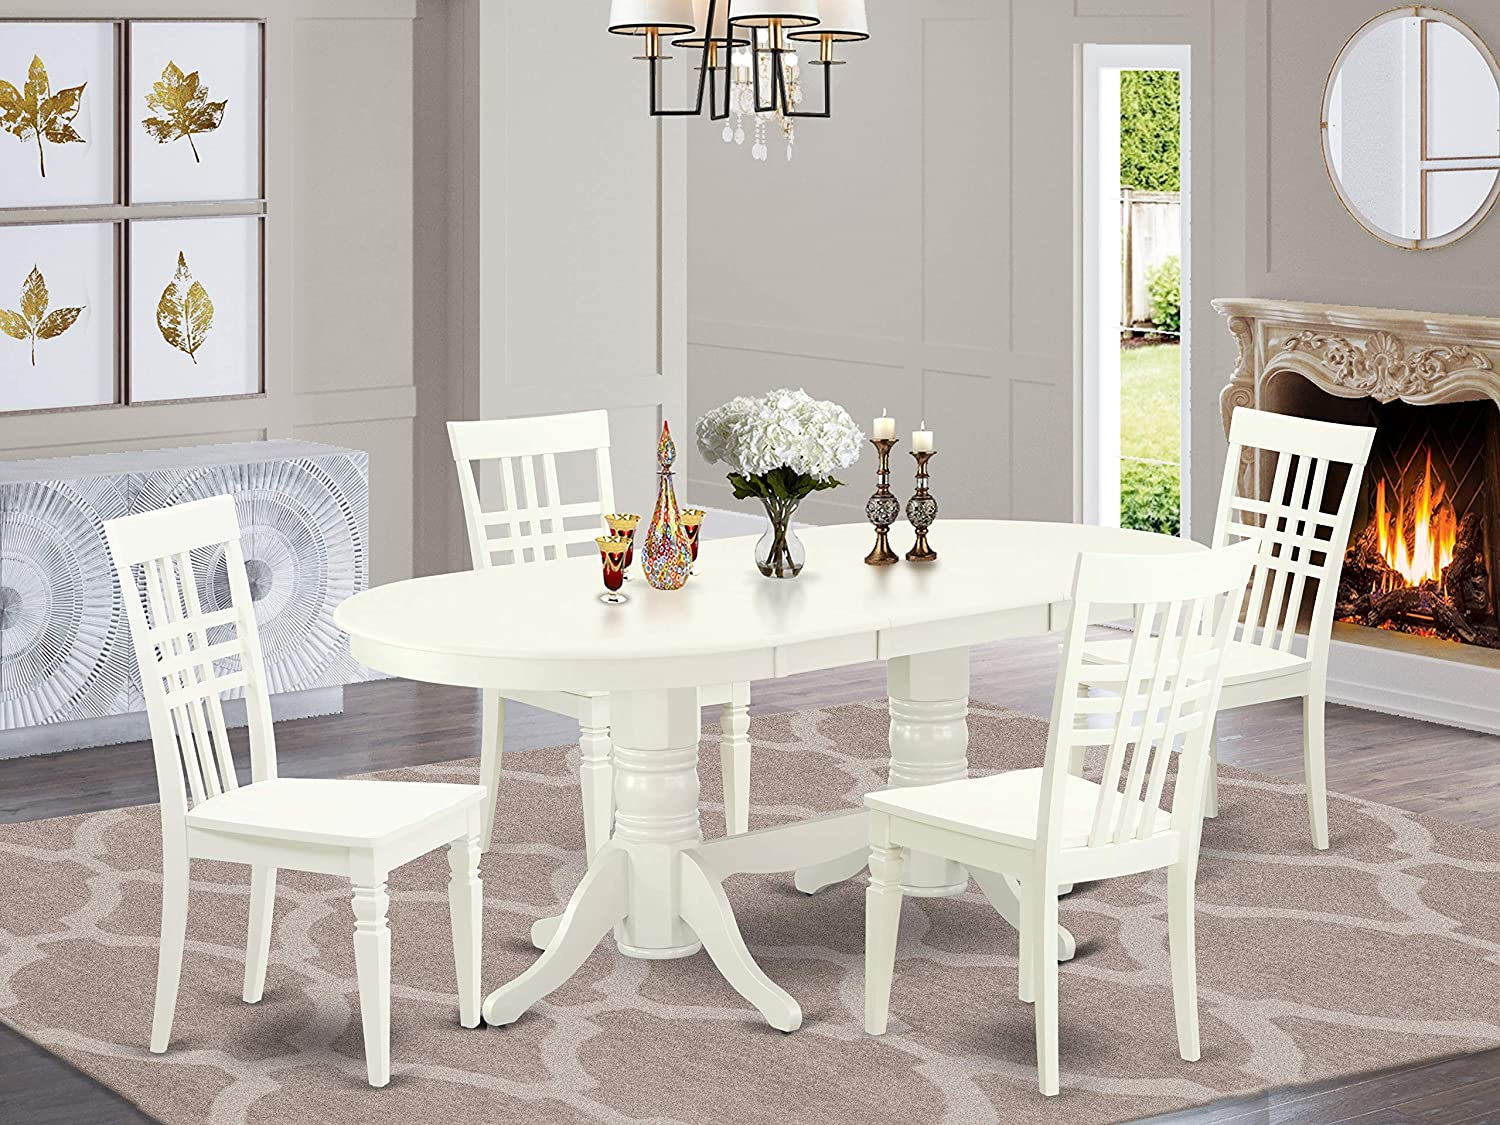 5 Pc Dining-Room Set Table With Rare And SEAL limited product Butterfly Storing Self Leaf